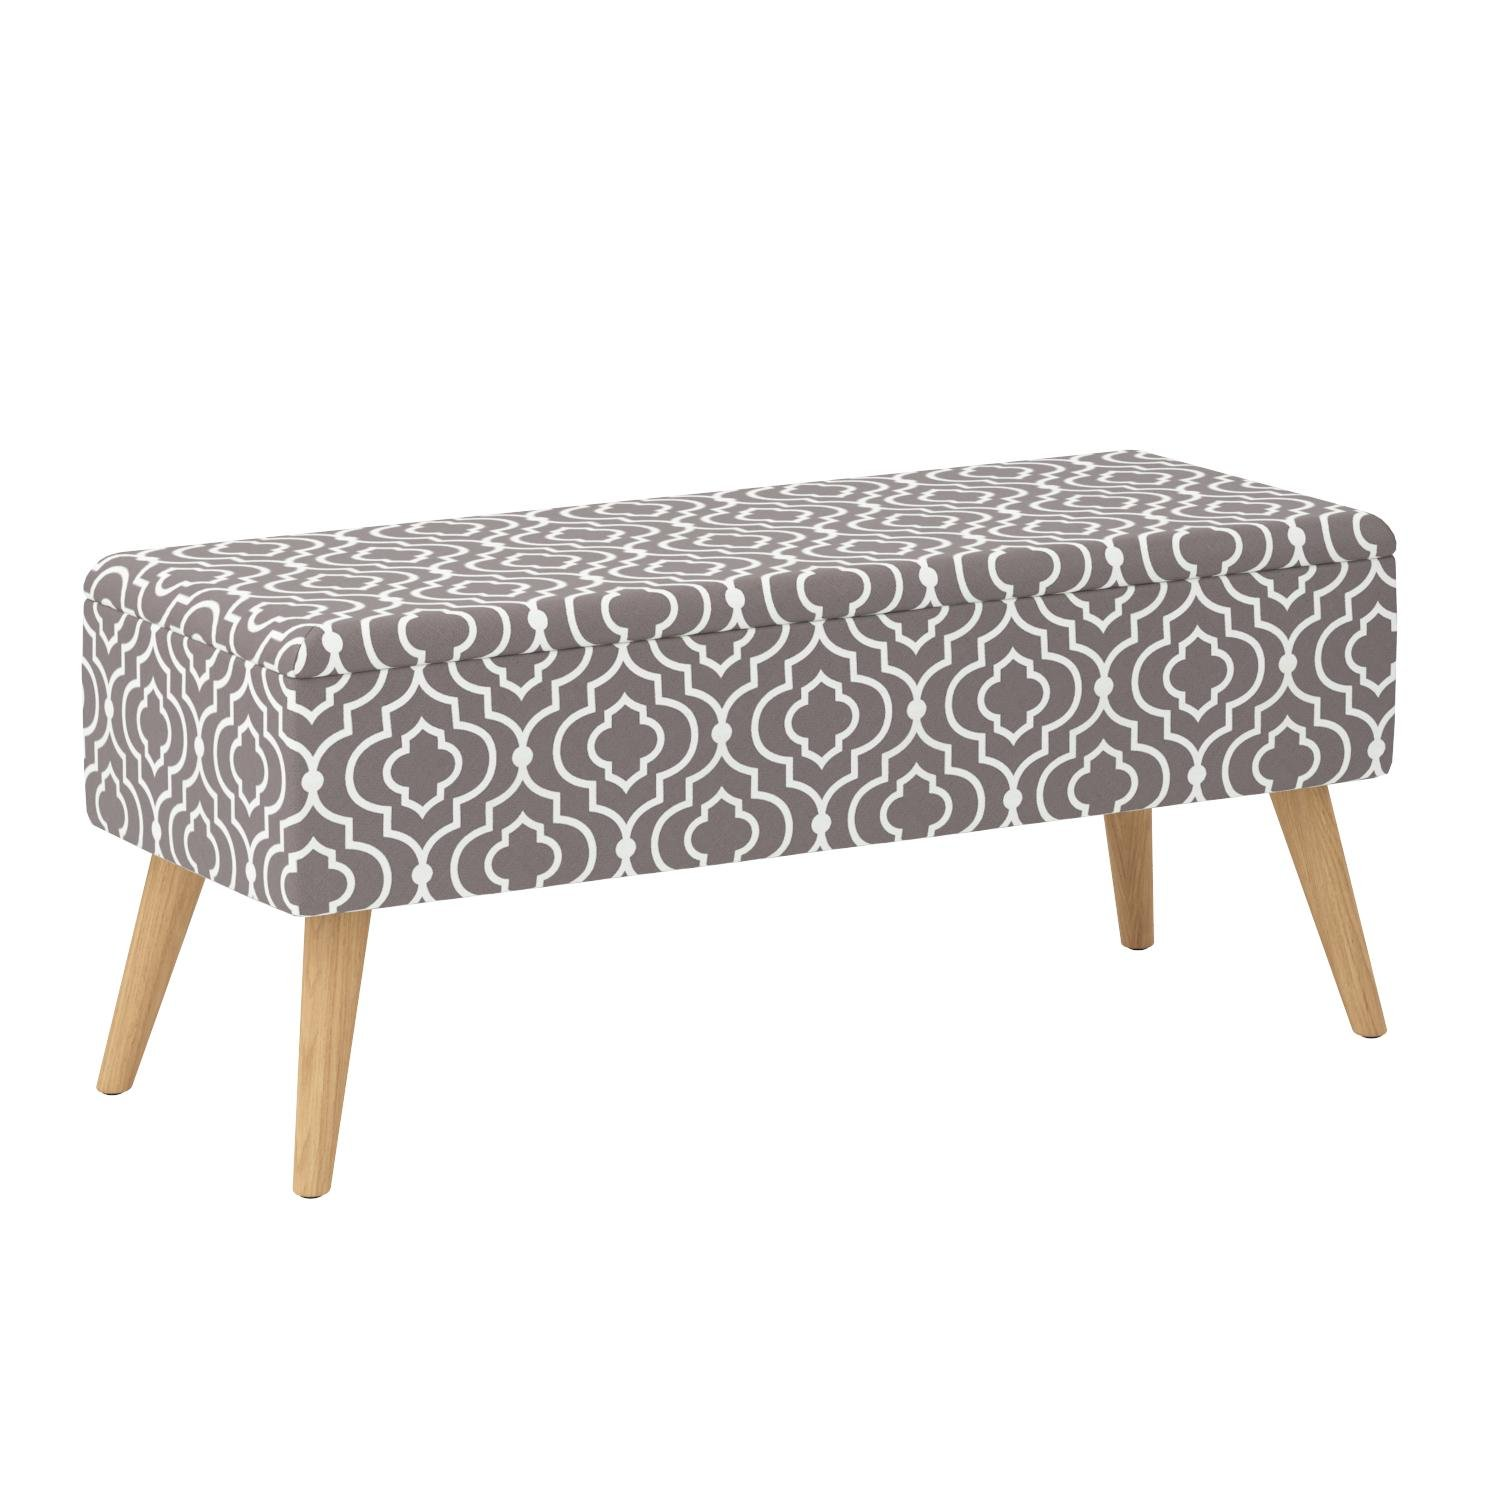 Pleasant Details About Otto Ben 37 Storage Ottoman Bench With Easy Lift Top Upholstered Large Shoe Squirreltailoven Fun Painted Chair Ideas Images Squirreltailovenorg